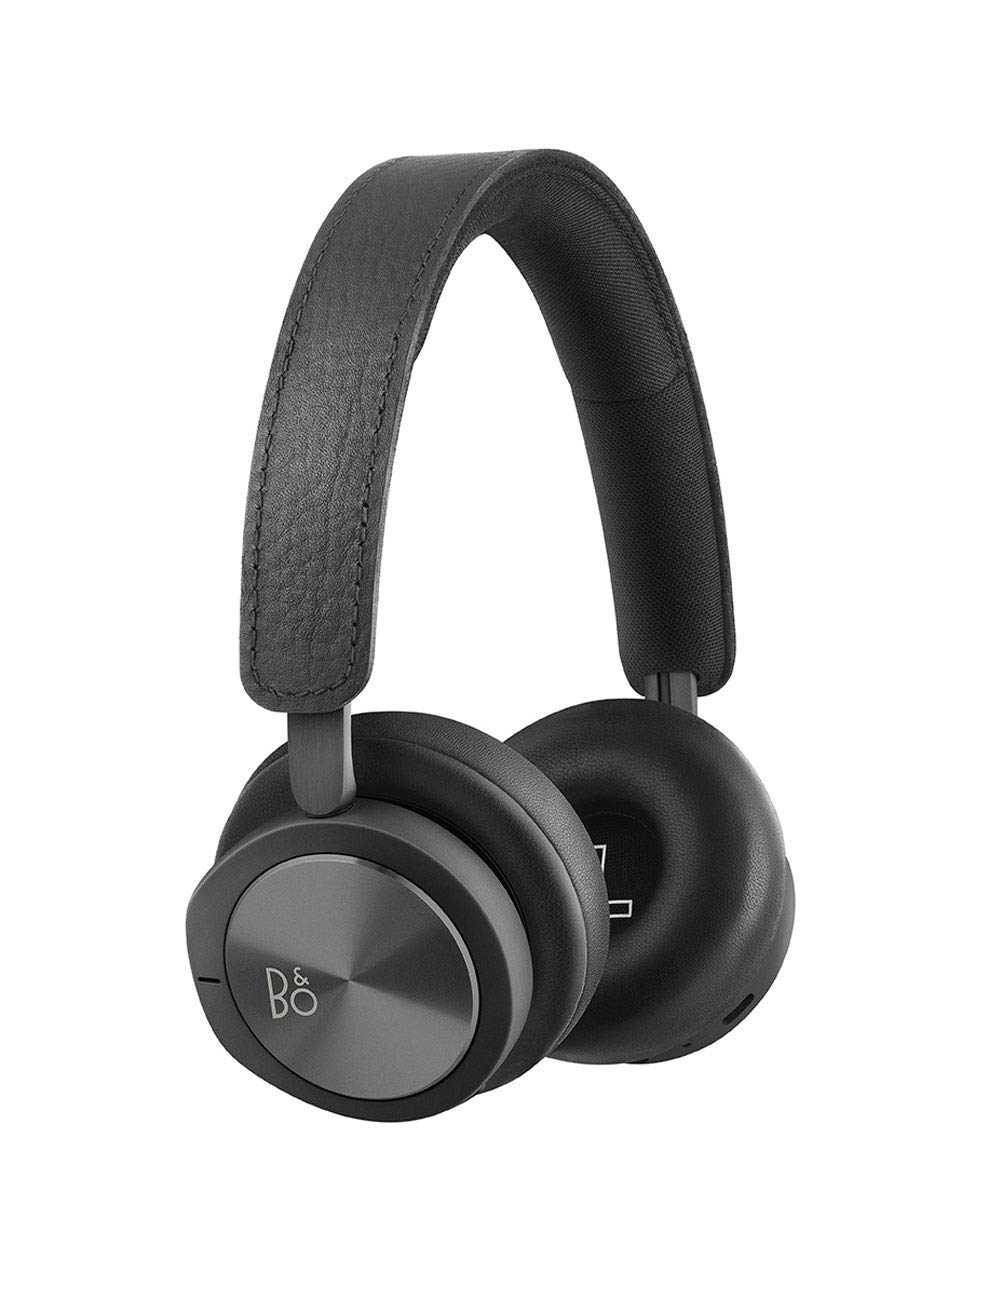 B O PLAY by Bang Olufsen Beoplay H8i Wireless Bluetooth On-Ear Headphones with Active Noise Cancellation ANC , Transparency mode and Microphone Black Renewed